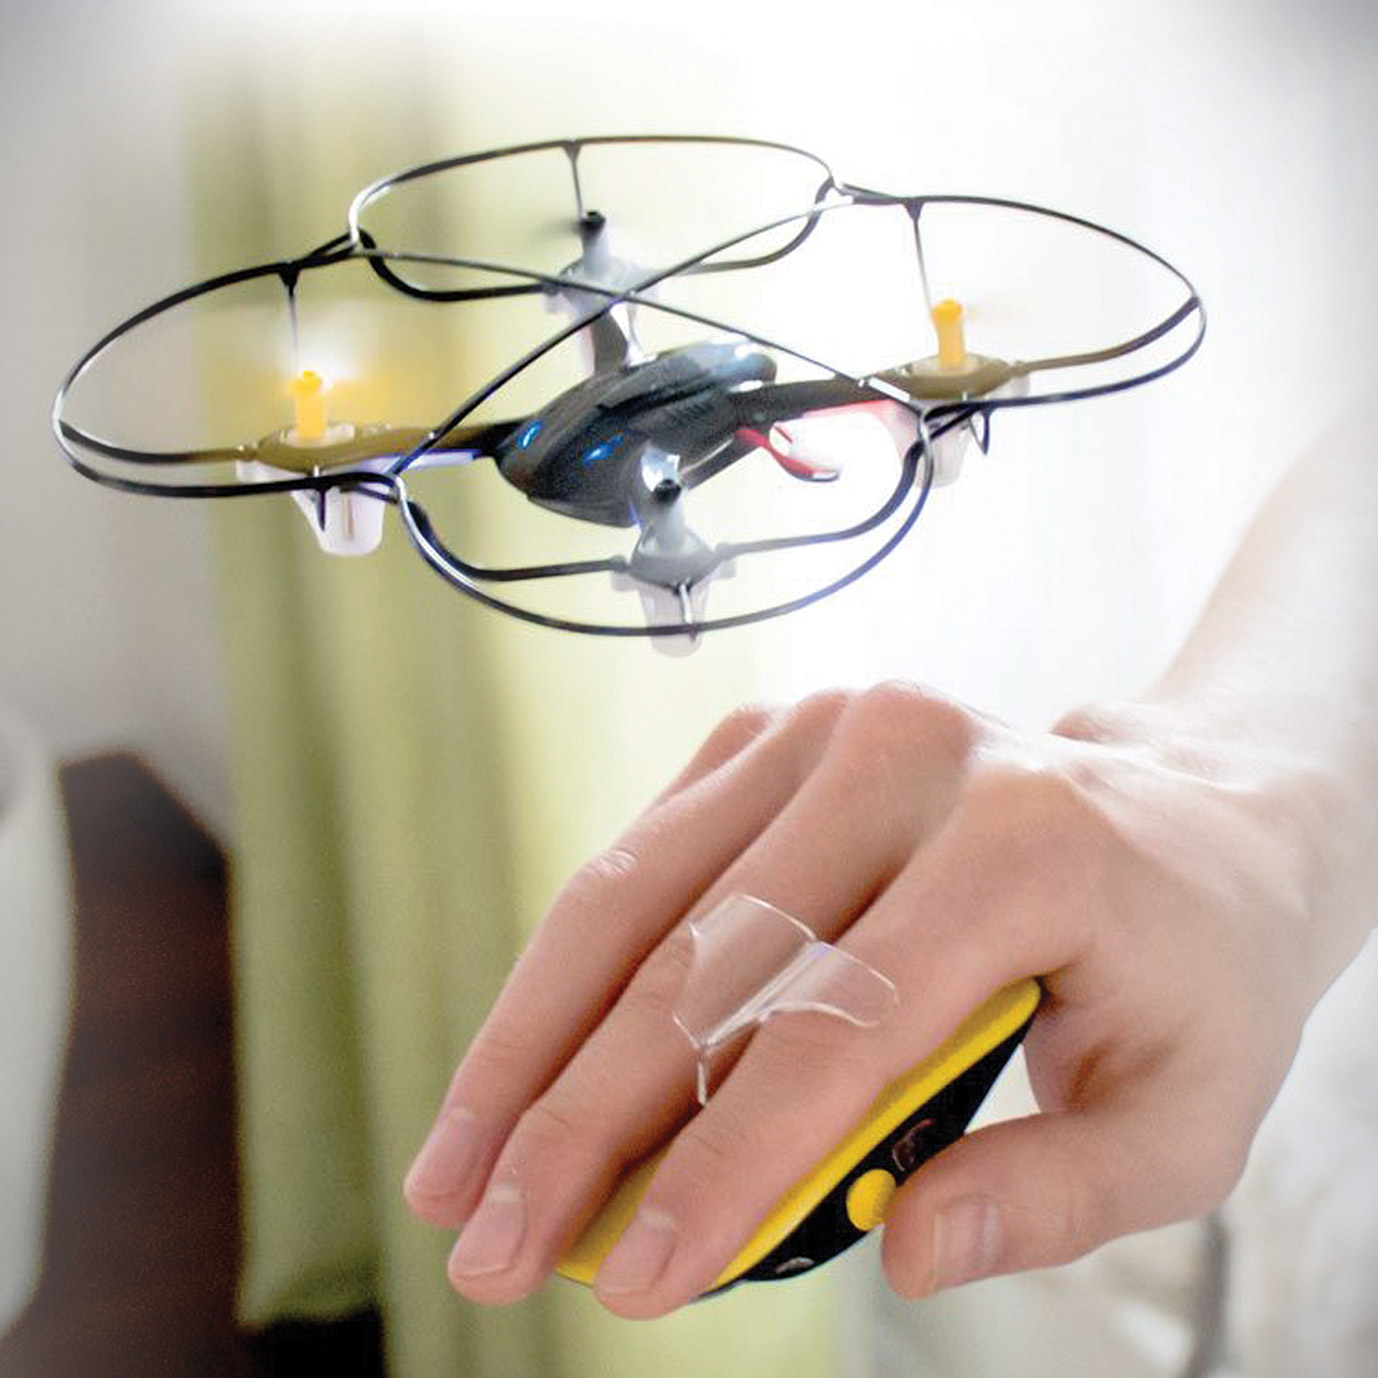 MOTION CONTROL DRONE -